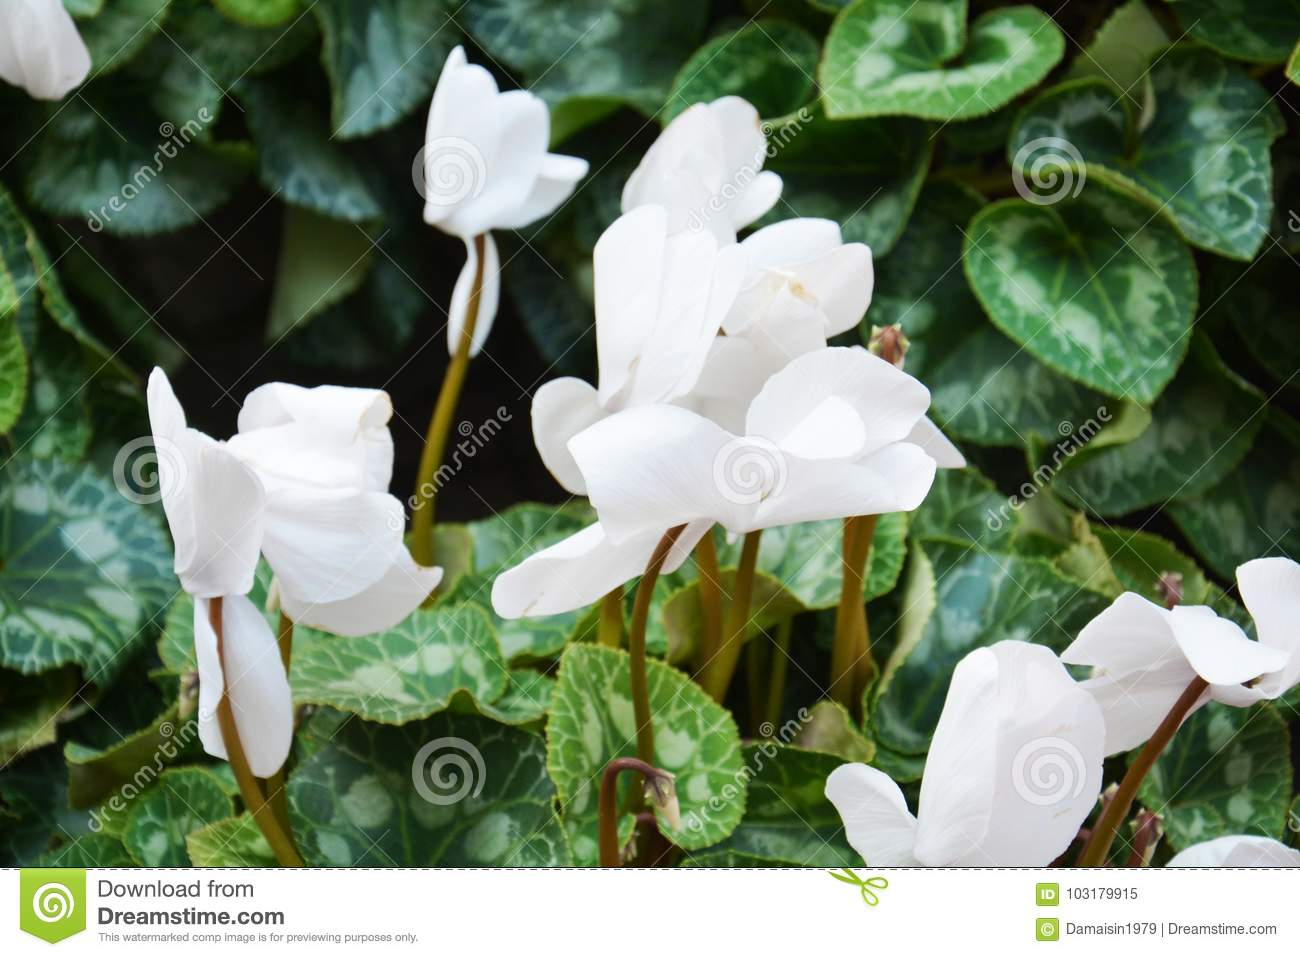 White flowers and green leaves flowers close up stock image image white flowers and green leaves flowers close up mightylinksfo